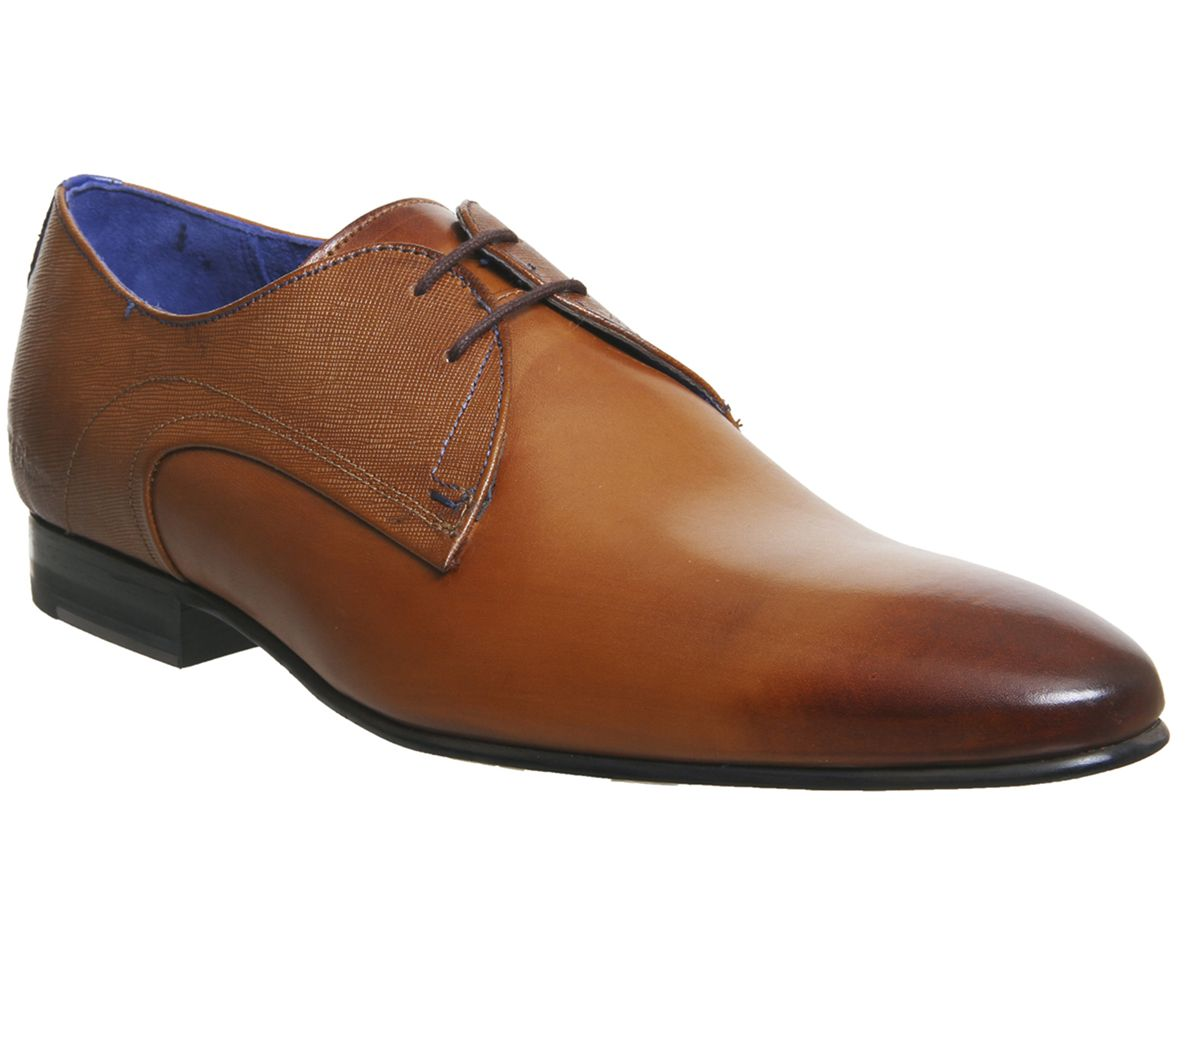 5d93be6e82ff5 Ted Baker Peair Lace Up Shoes Tan Leather - Smart